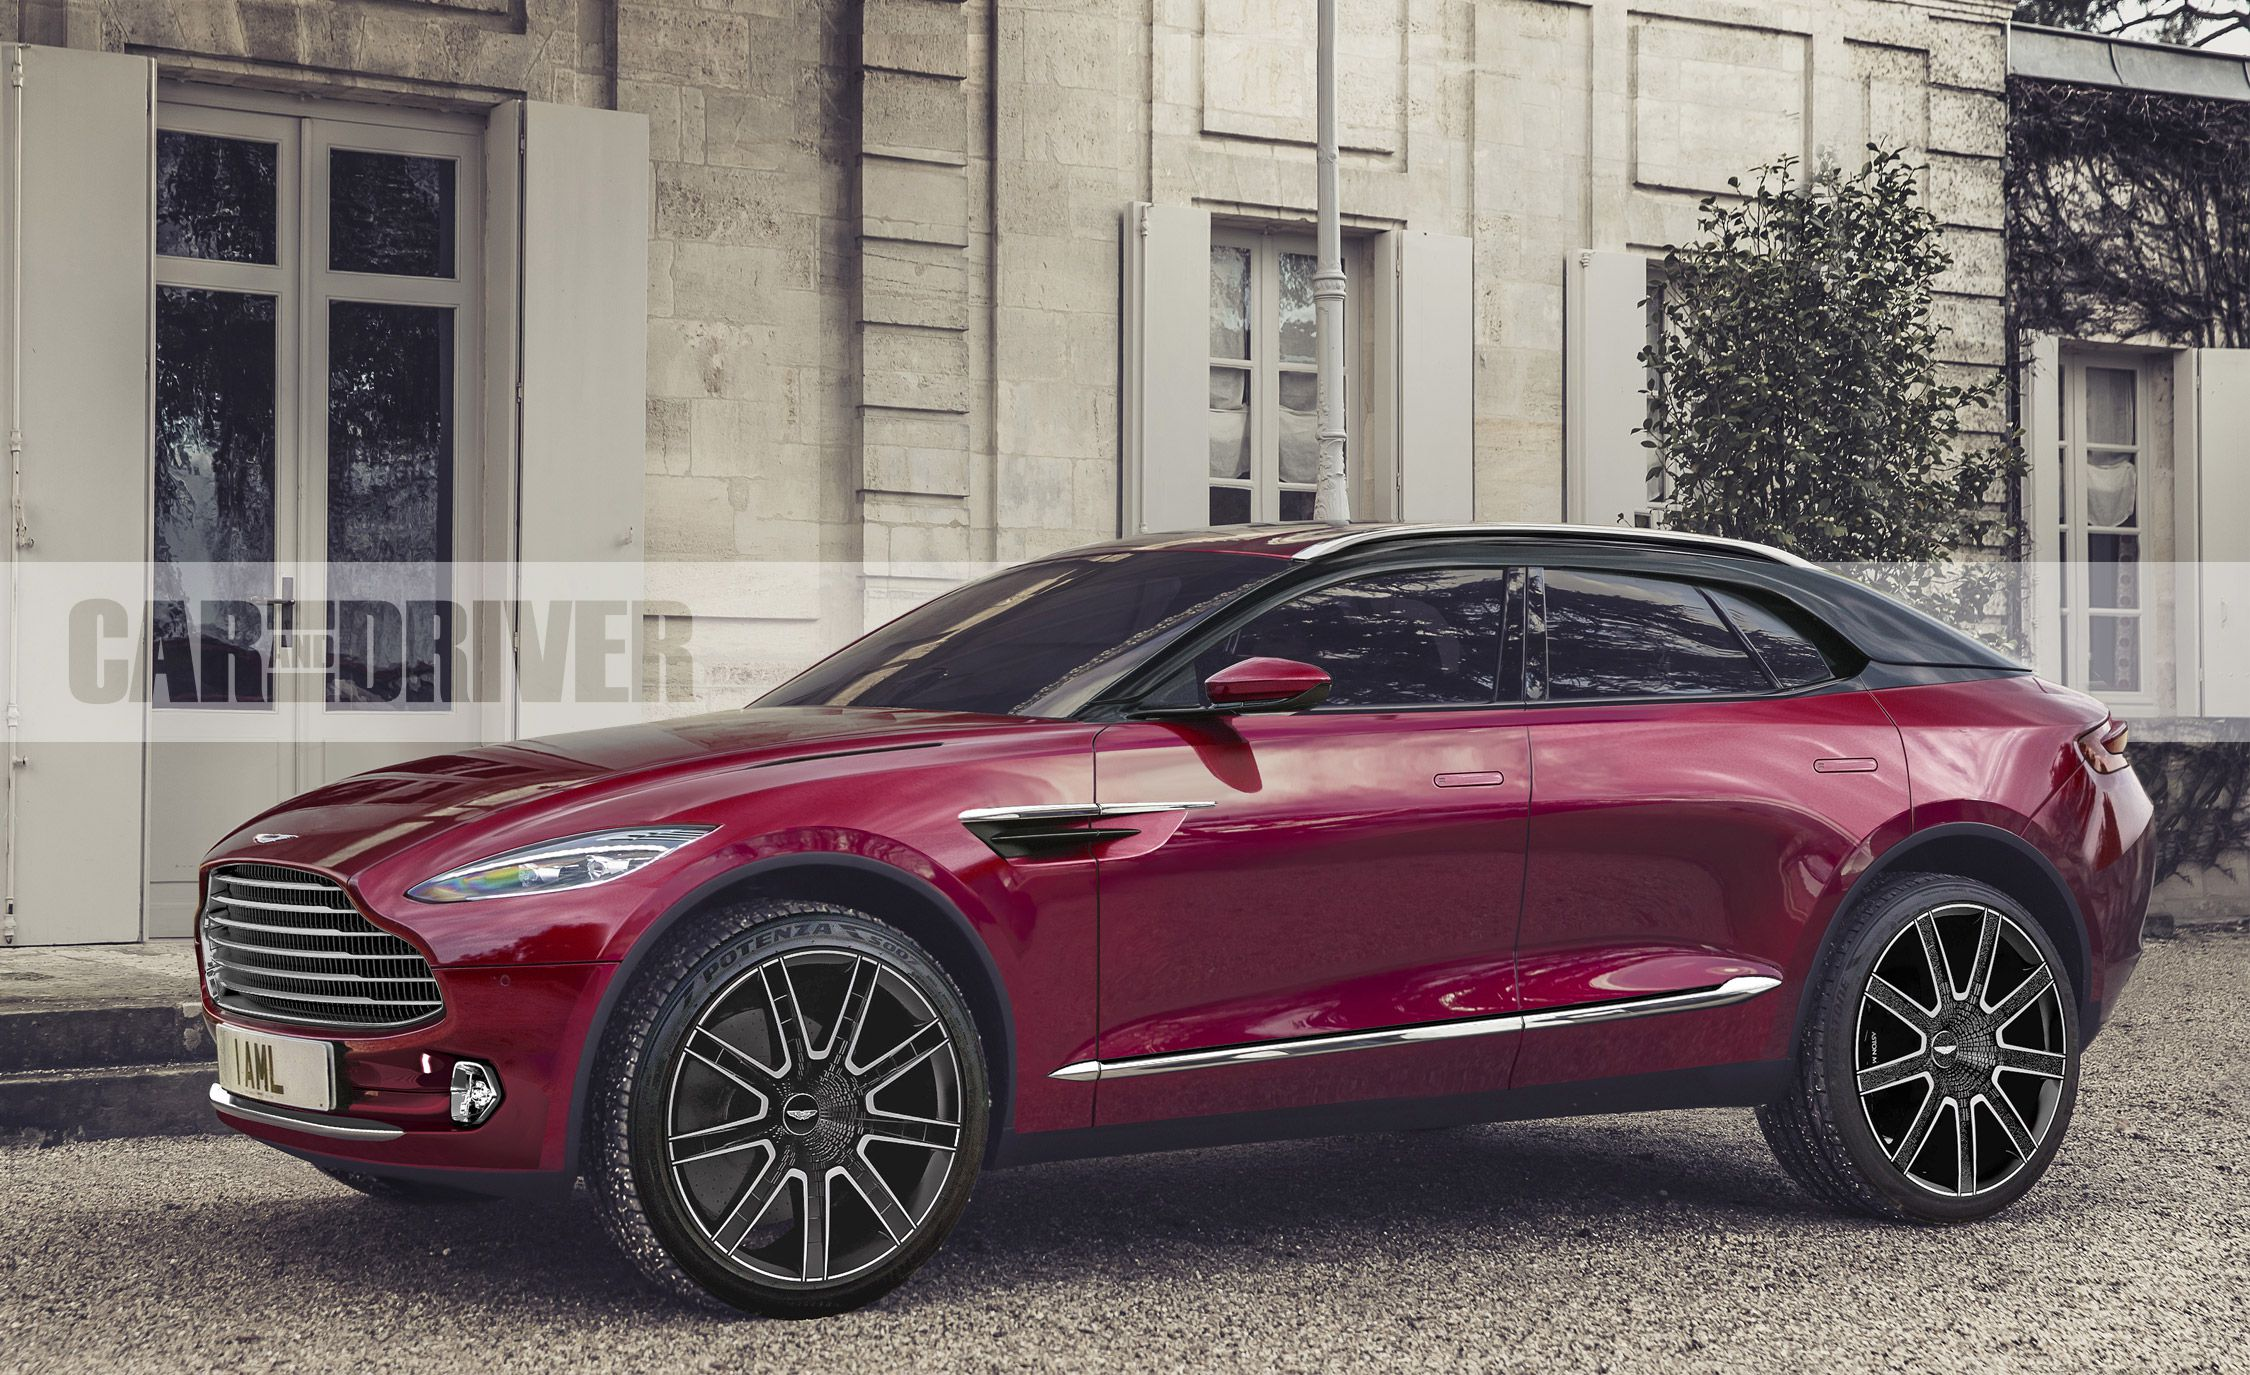 Photo of Aston Martin'in ilk SUV modeli Varekai detaylanıyor